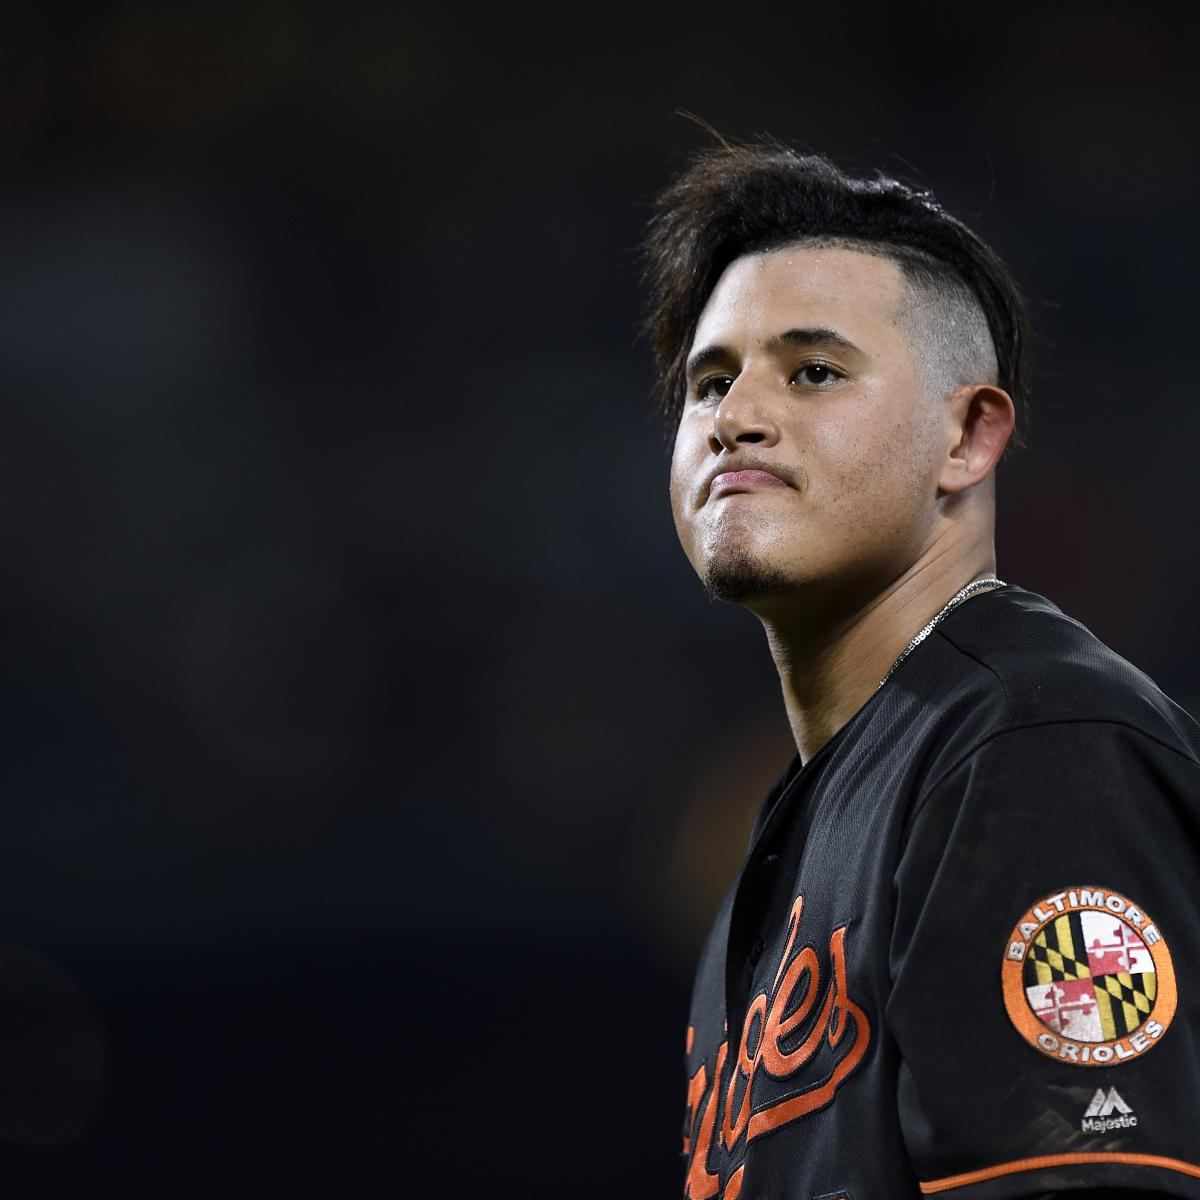 Manny Machado Trade Rumors: Dodgers, Brewers 'Most Serious' About Orioles Star